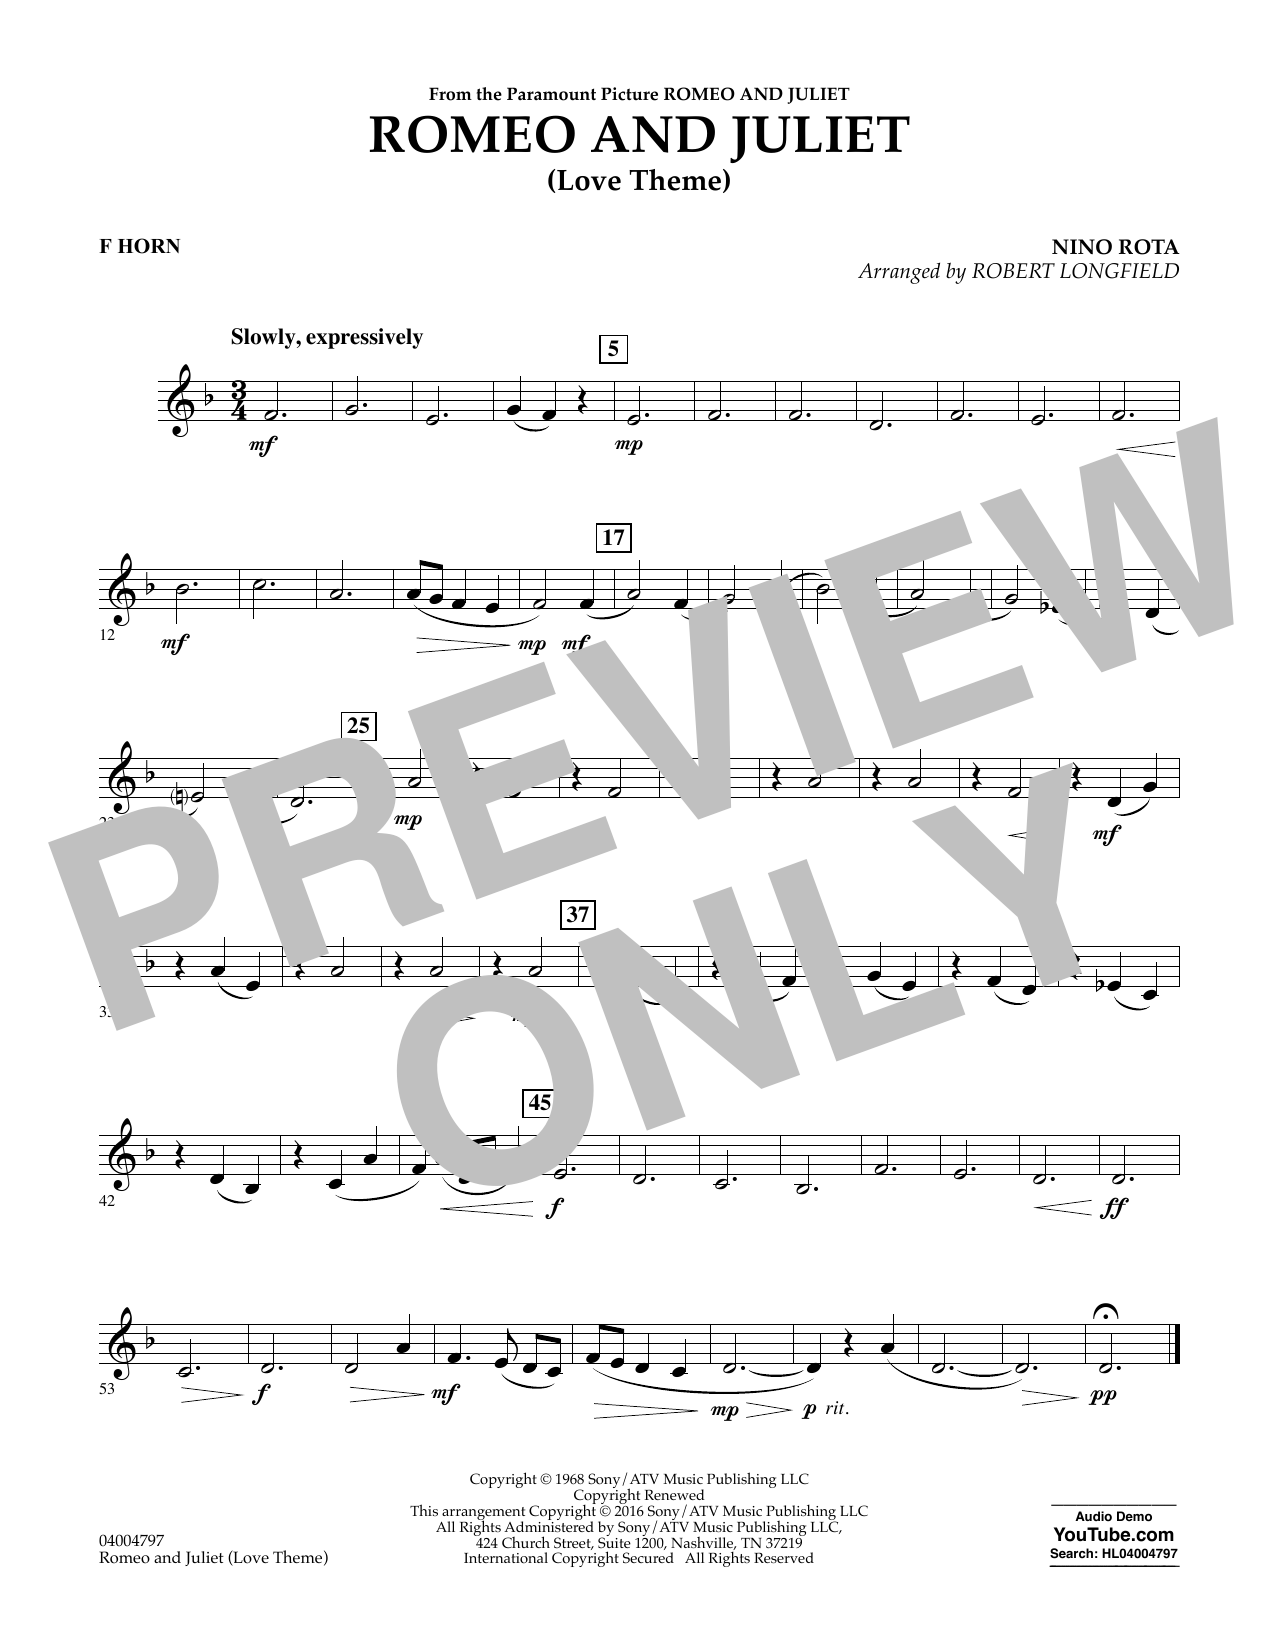 Romeo and Juliet (Love Theme) - F Horn (Concert Band)